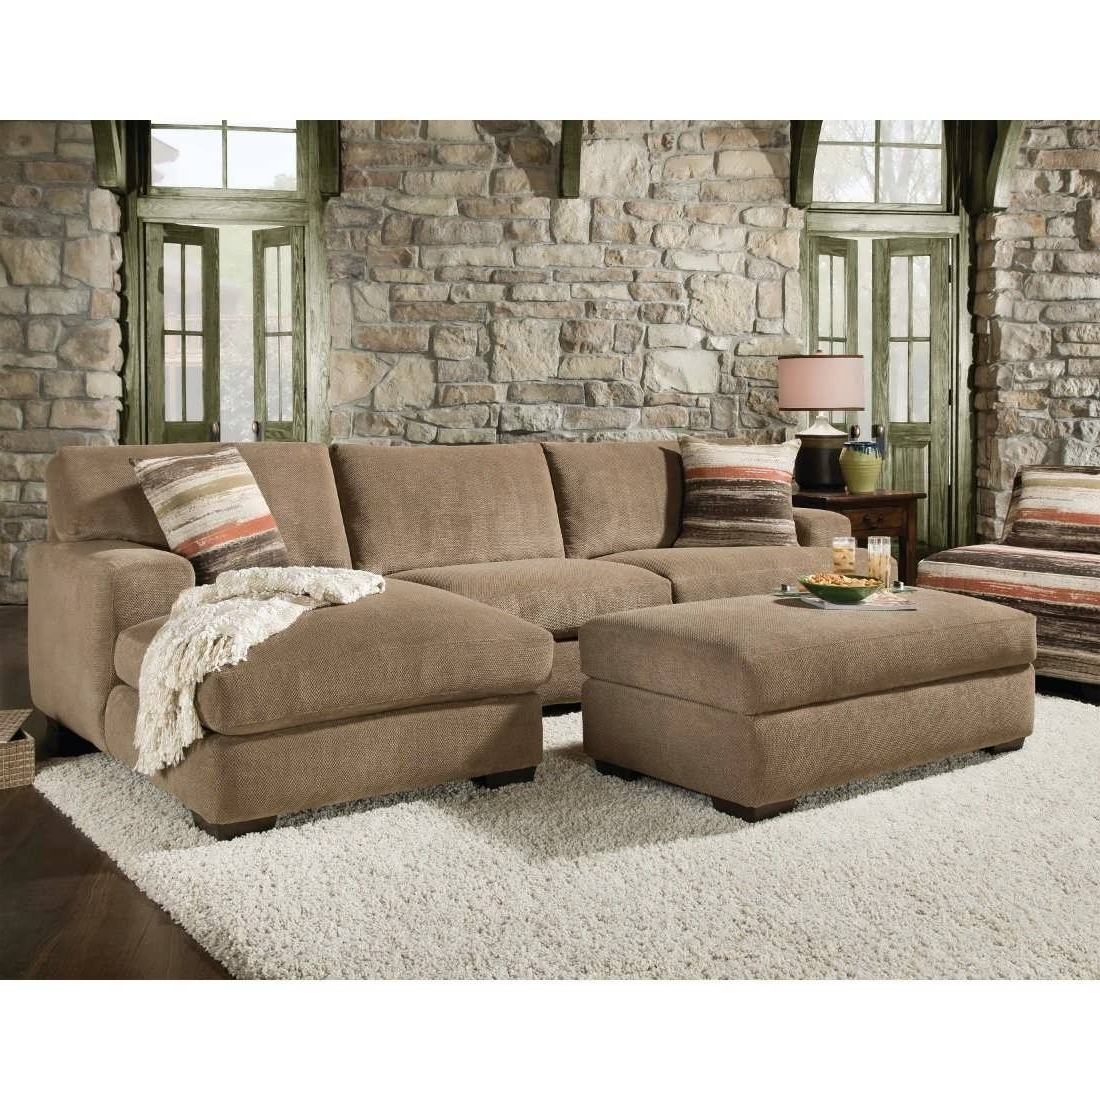 Sofa : Wrap Around Couch Cream Leather Sectional Double Chaise Pertaining To Popular Sectional Chaise Sofas (View 13 of 15)